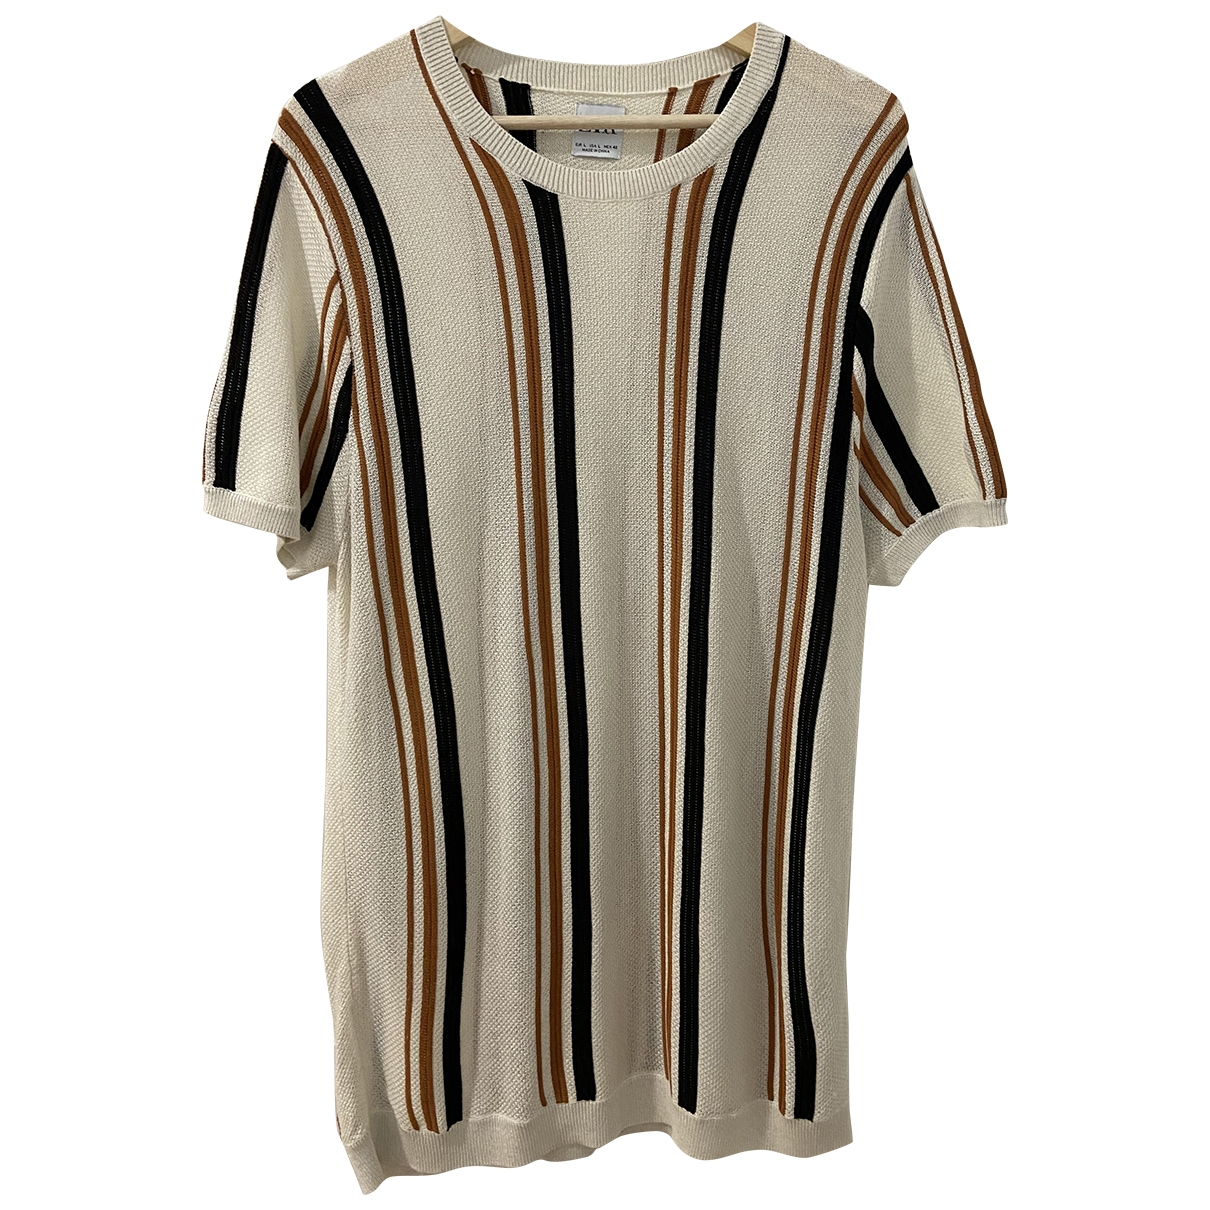 Zara \N Beige  top for Women L International